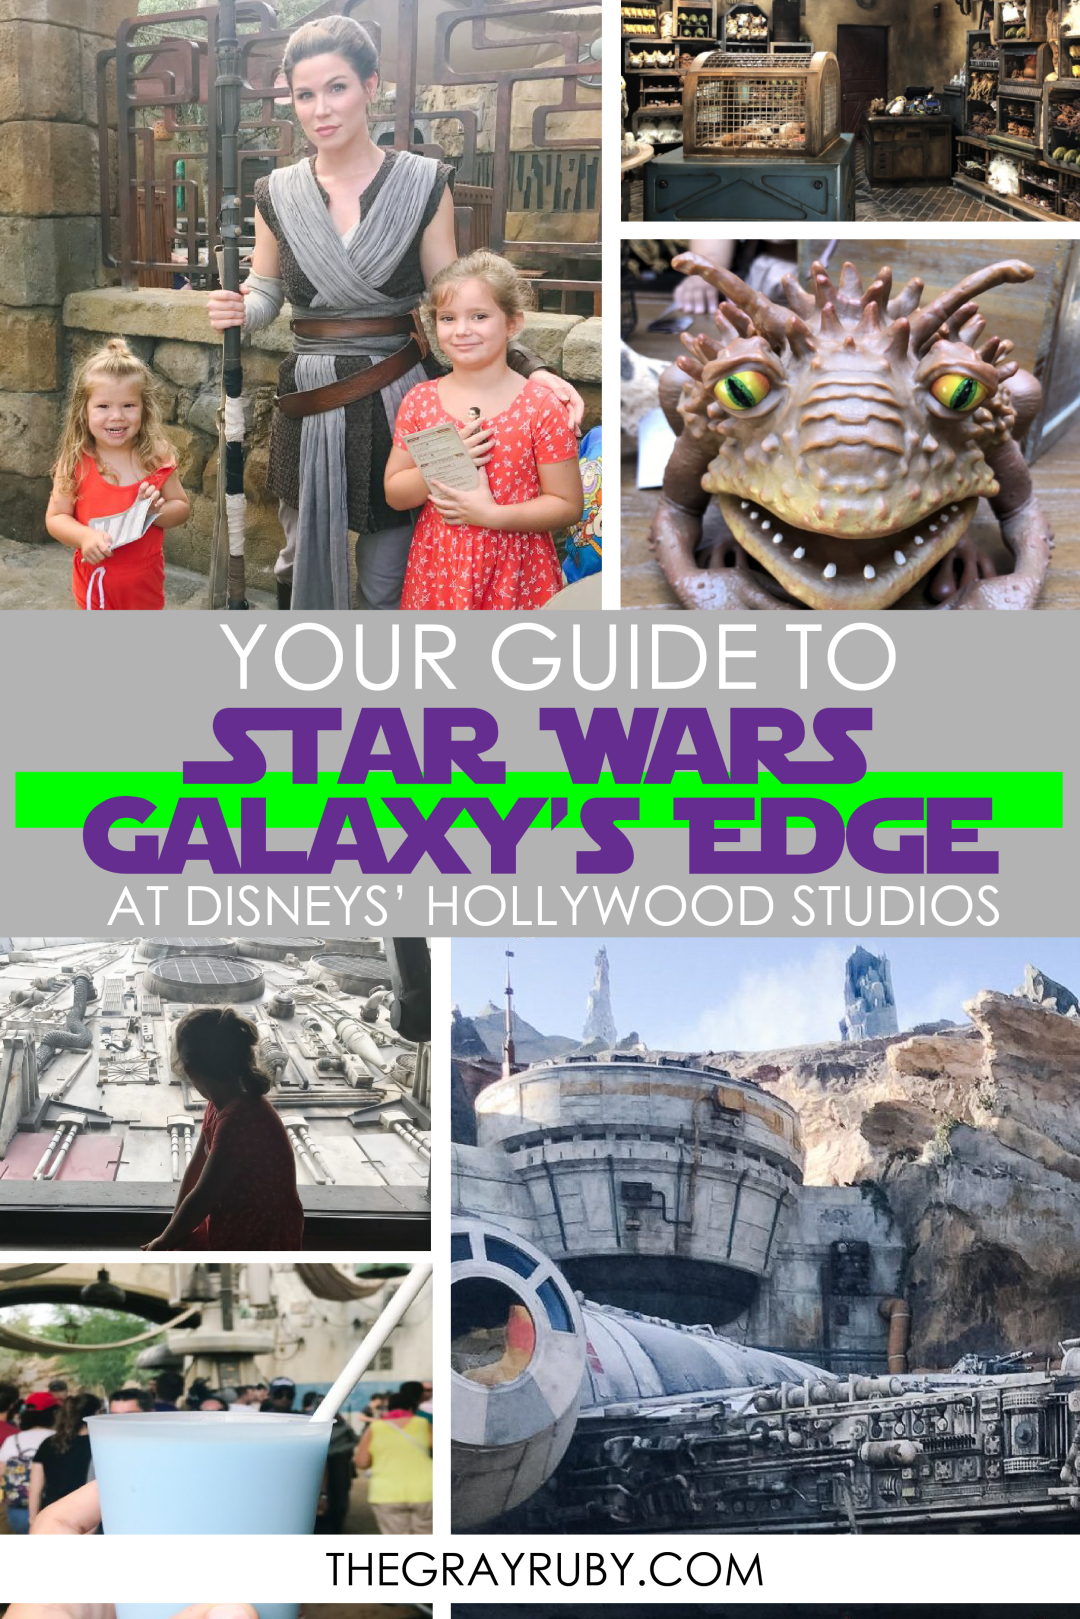 Top Ten Things you must do at Star Wars Galaxy's Edge